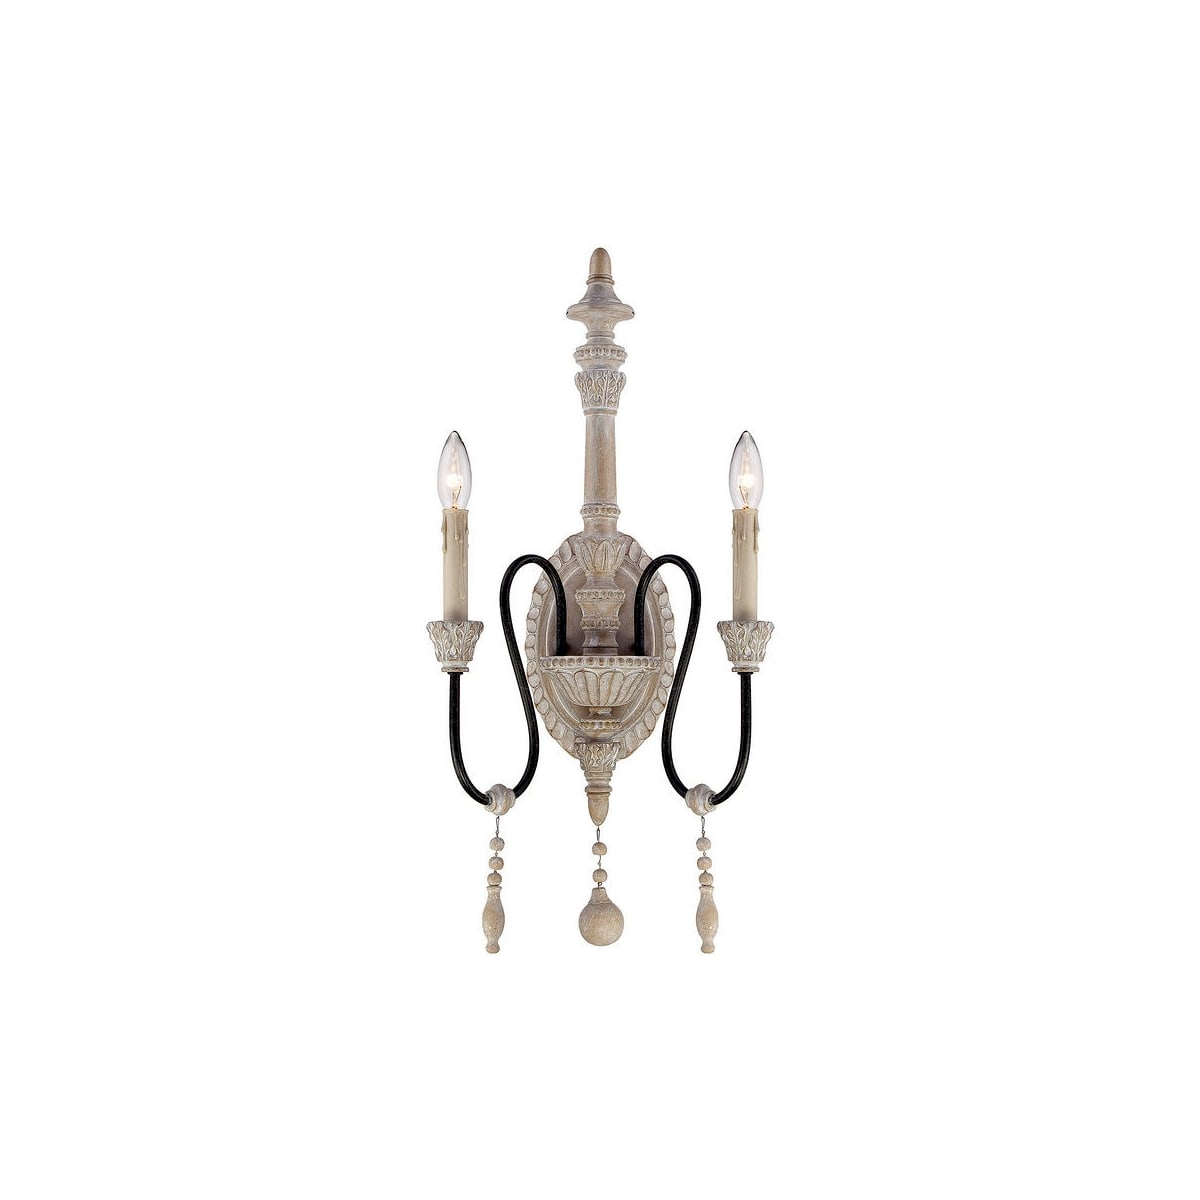 Savoy House Ashland 2-light French Country wall sconce - a gorgeous chic lighting option for your French farmhouse style space!